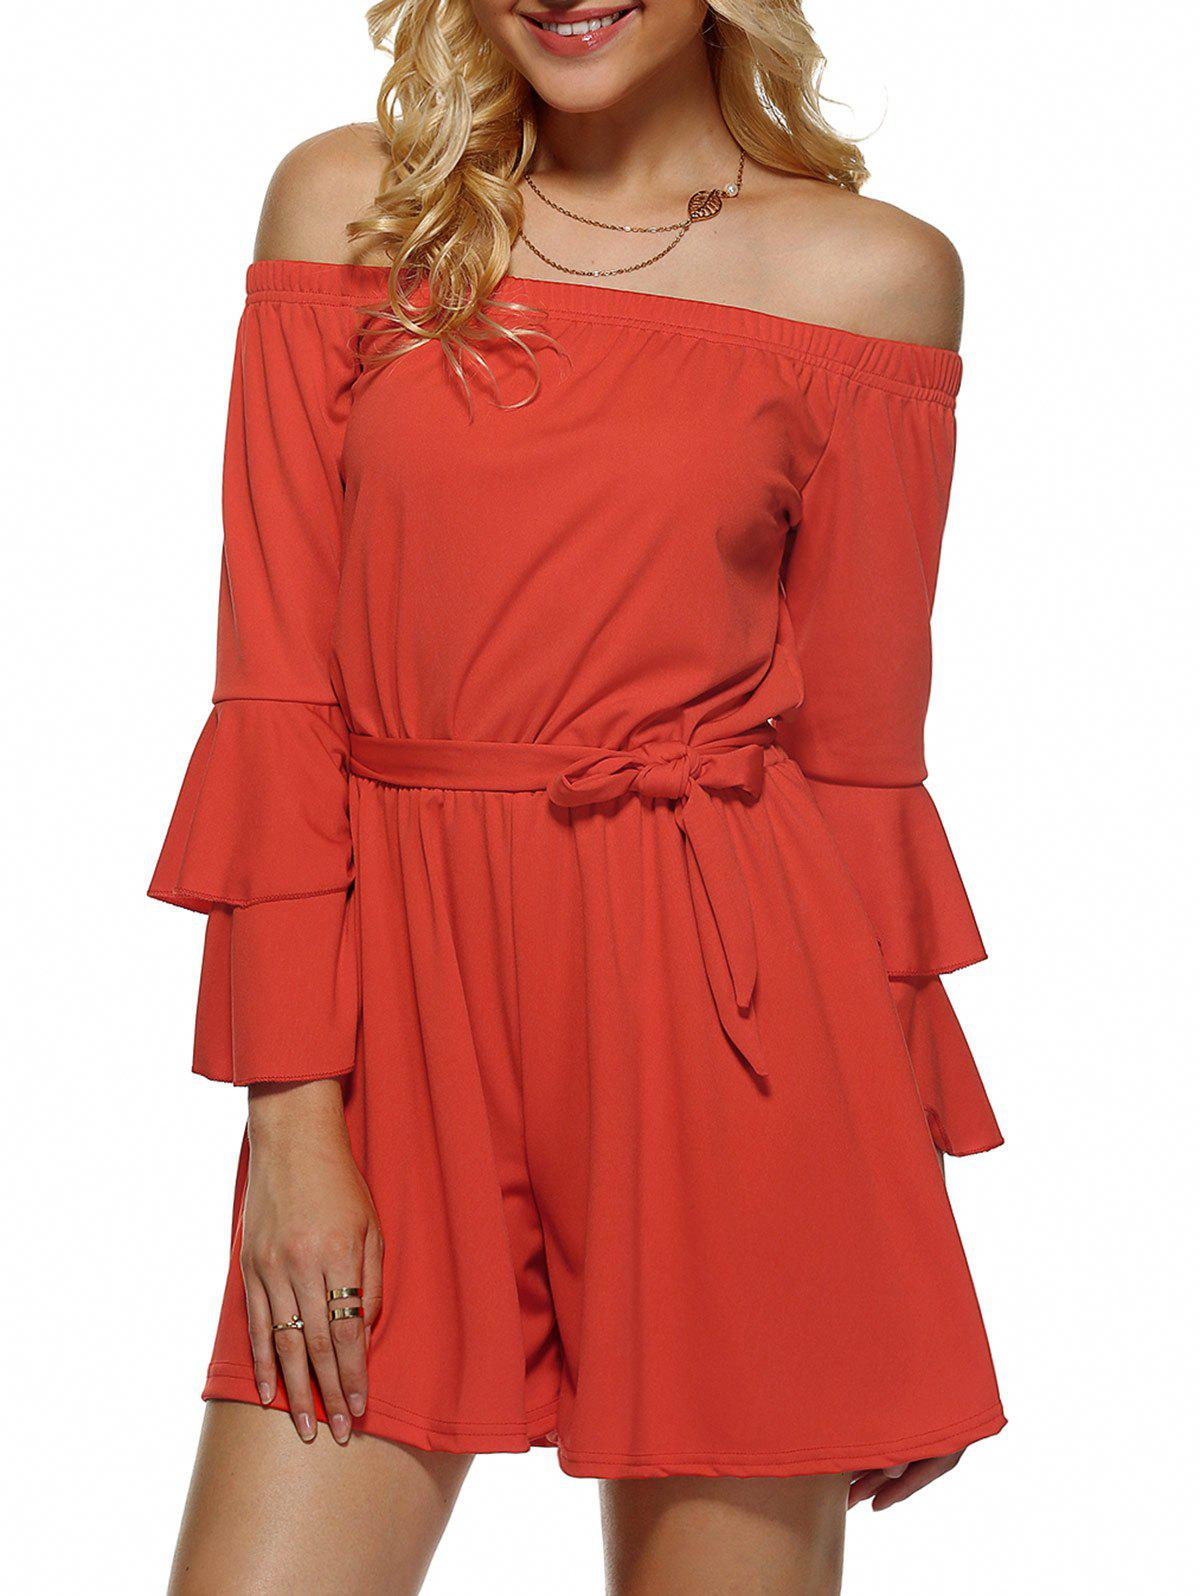 Off-The-Shoulder Flounced Flare Sleeves Romper